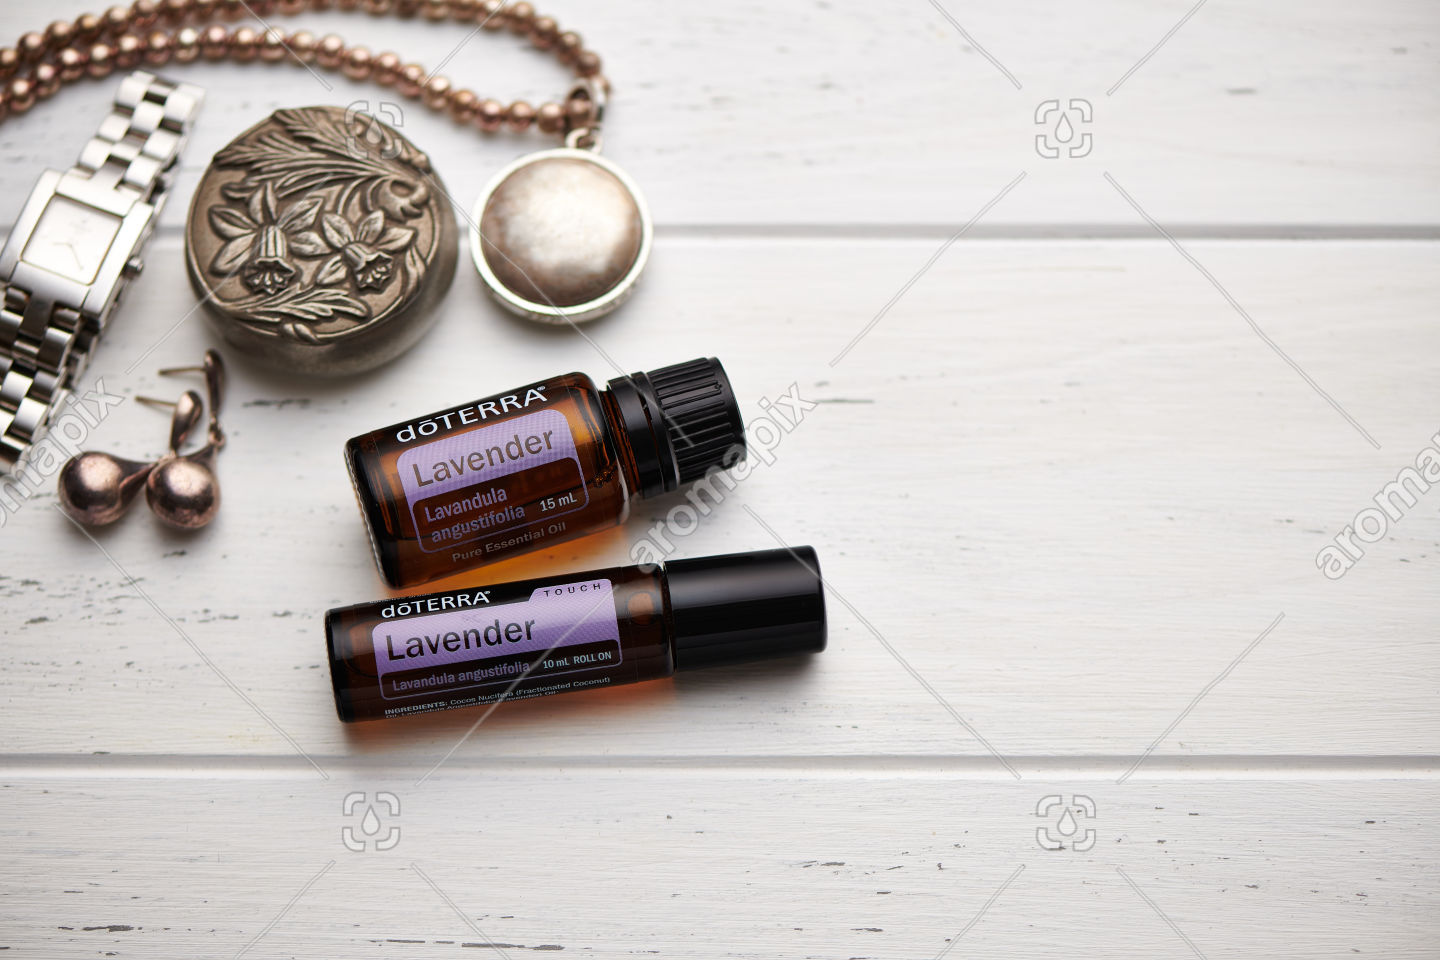 doTERRA Lavender and Lavender Touch on rustic background